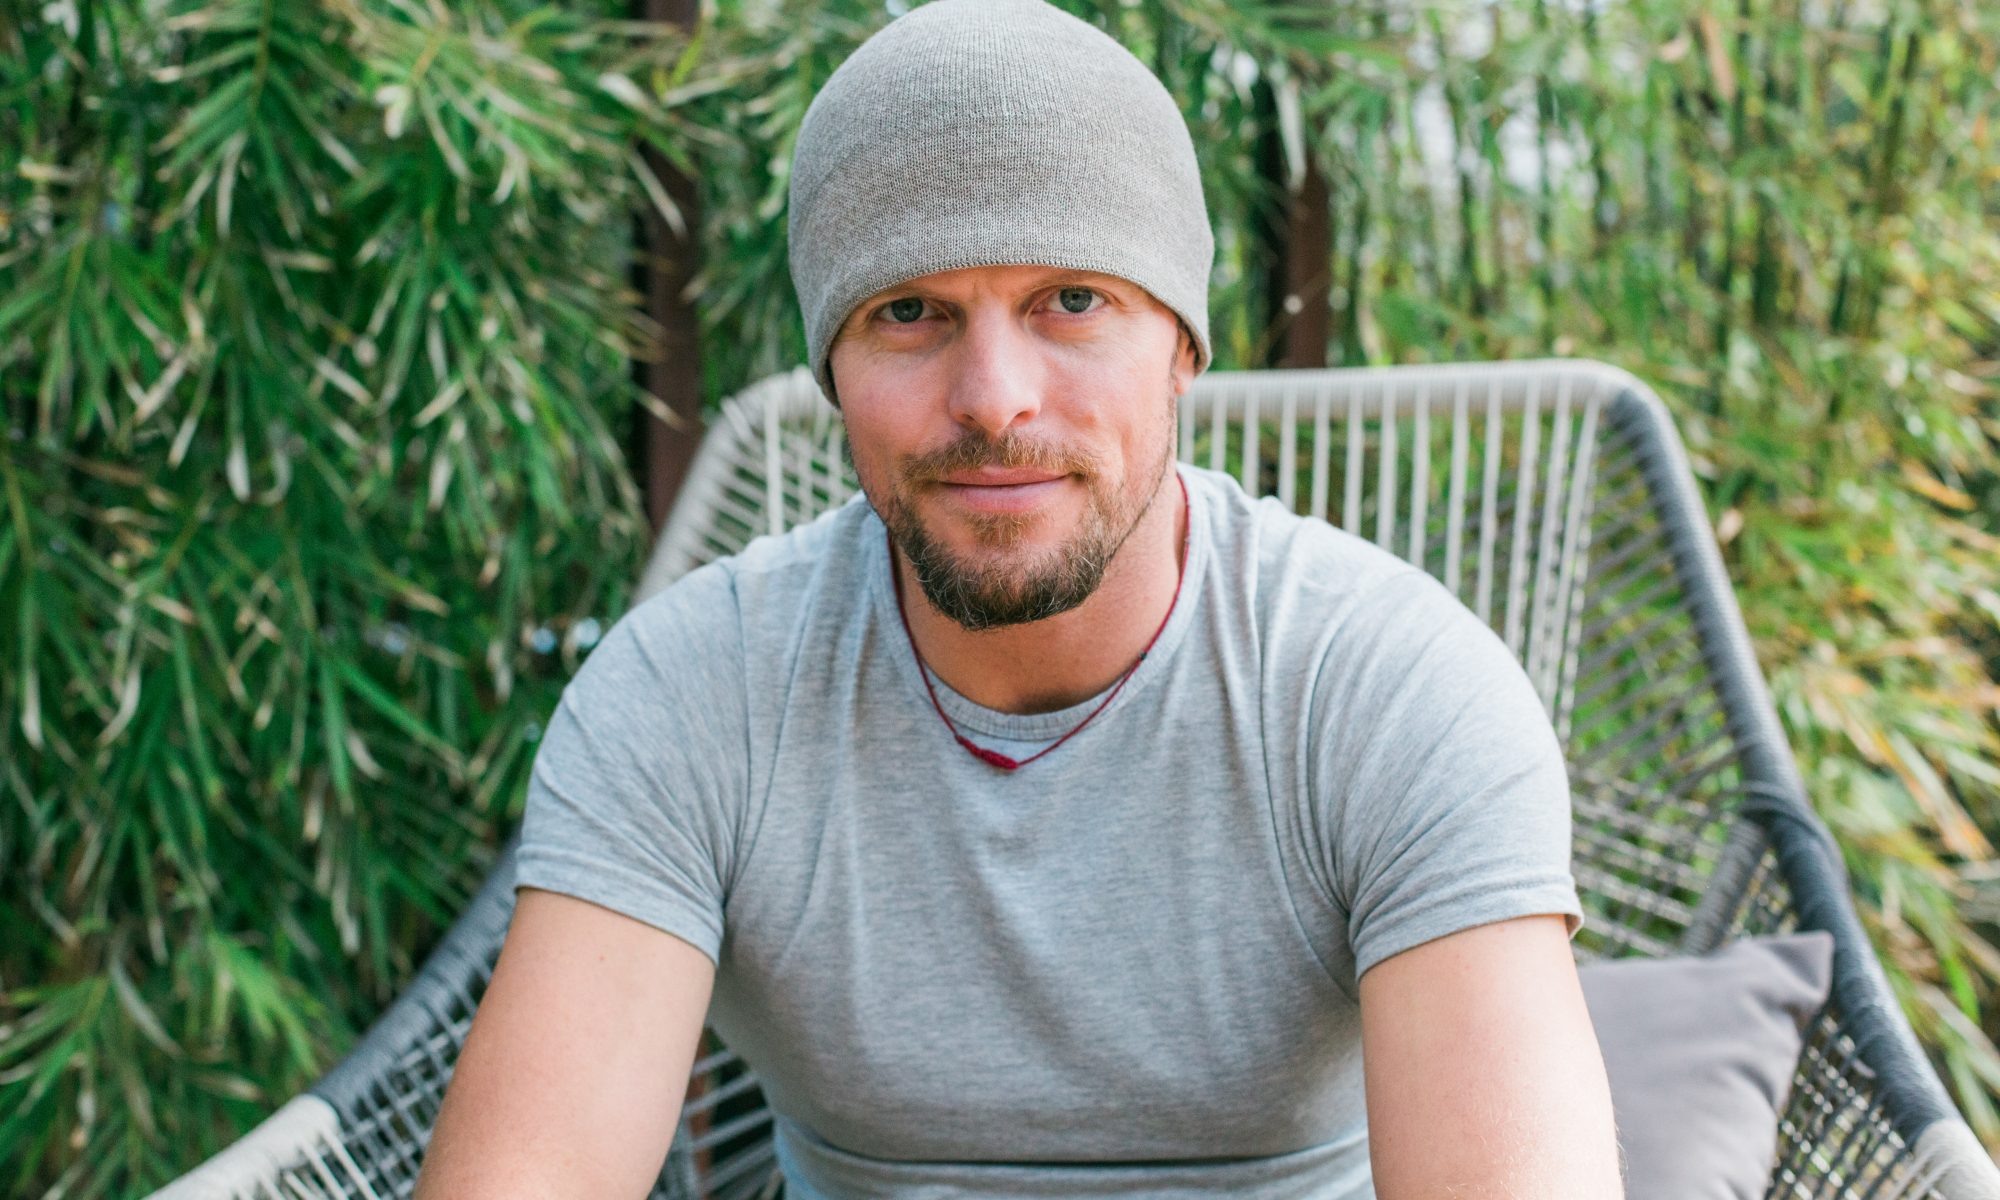 Tim Ferriss sitting in a large patio chair in front of a patch of bamboo.